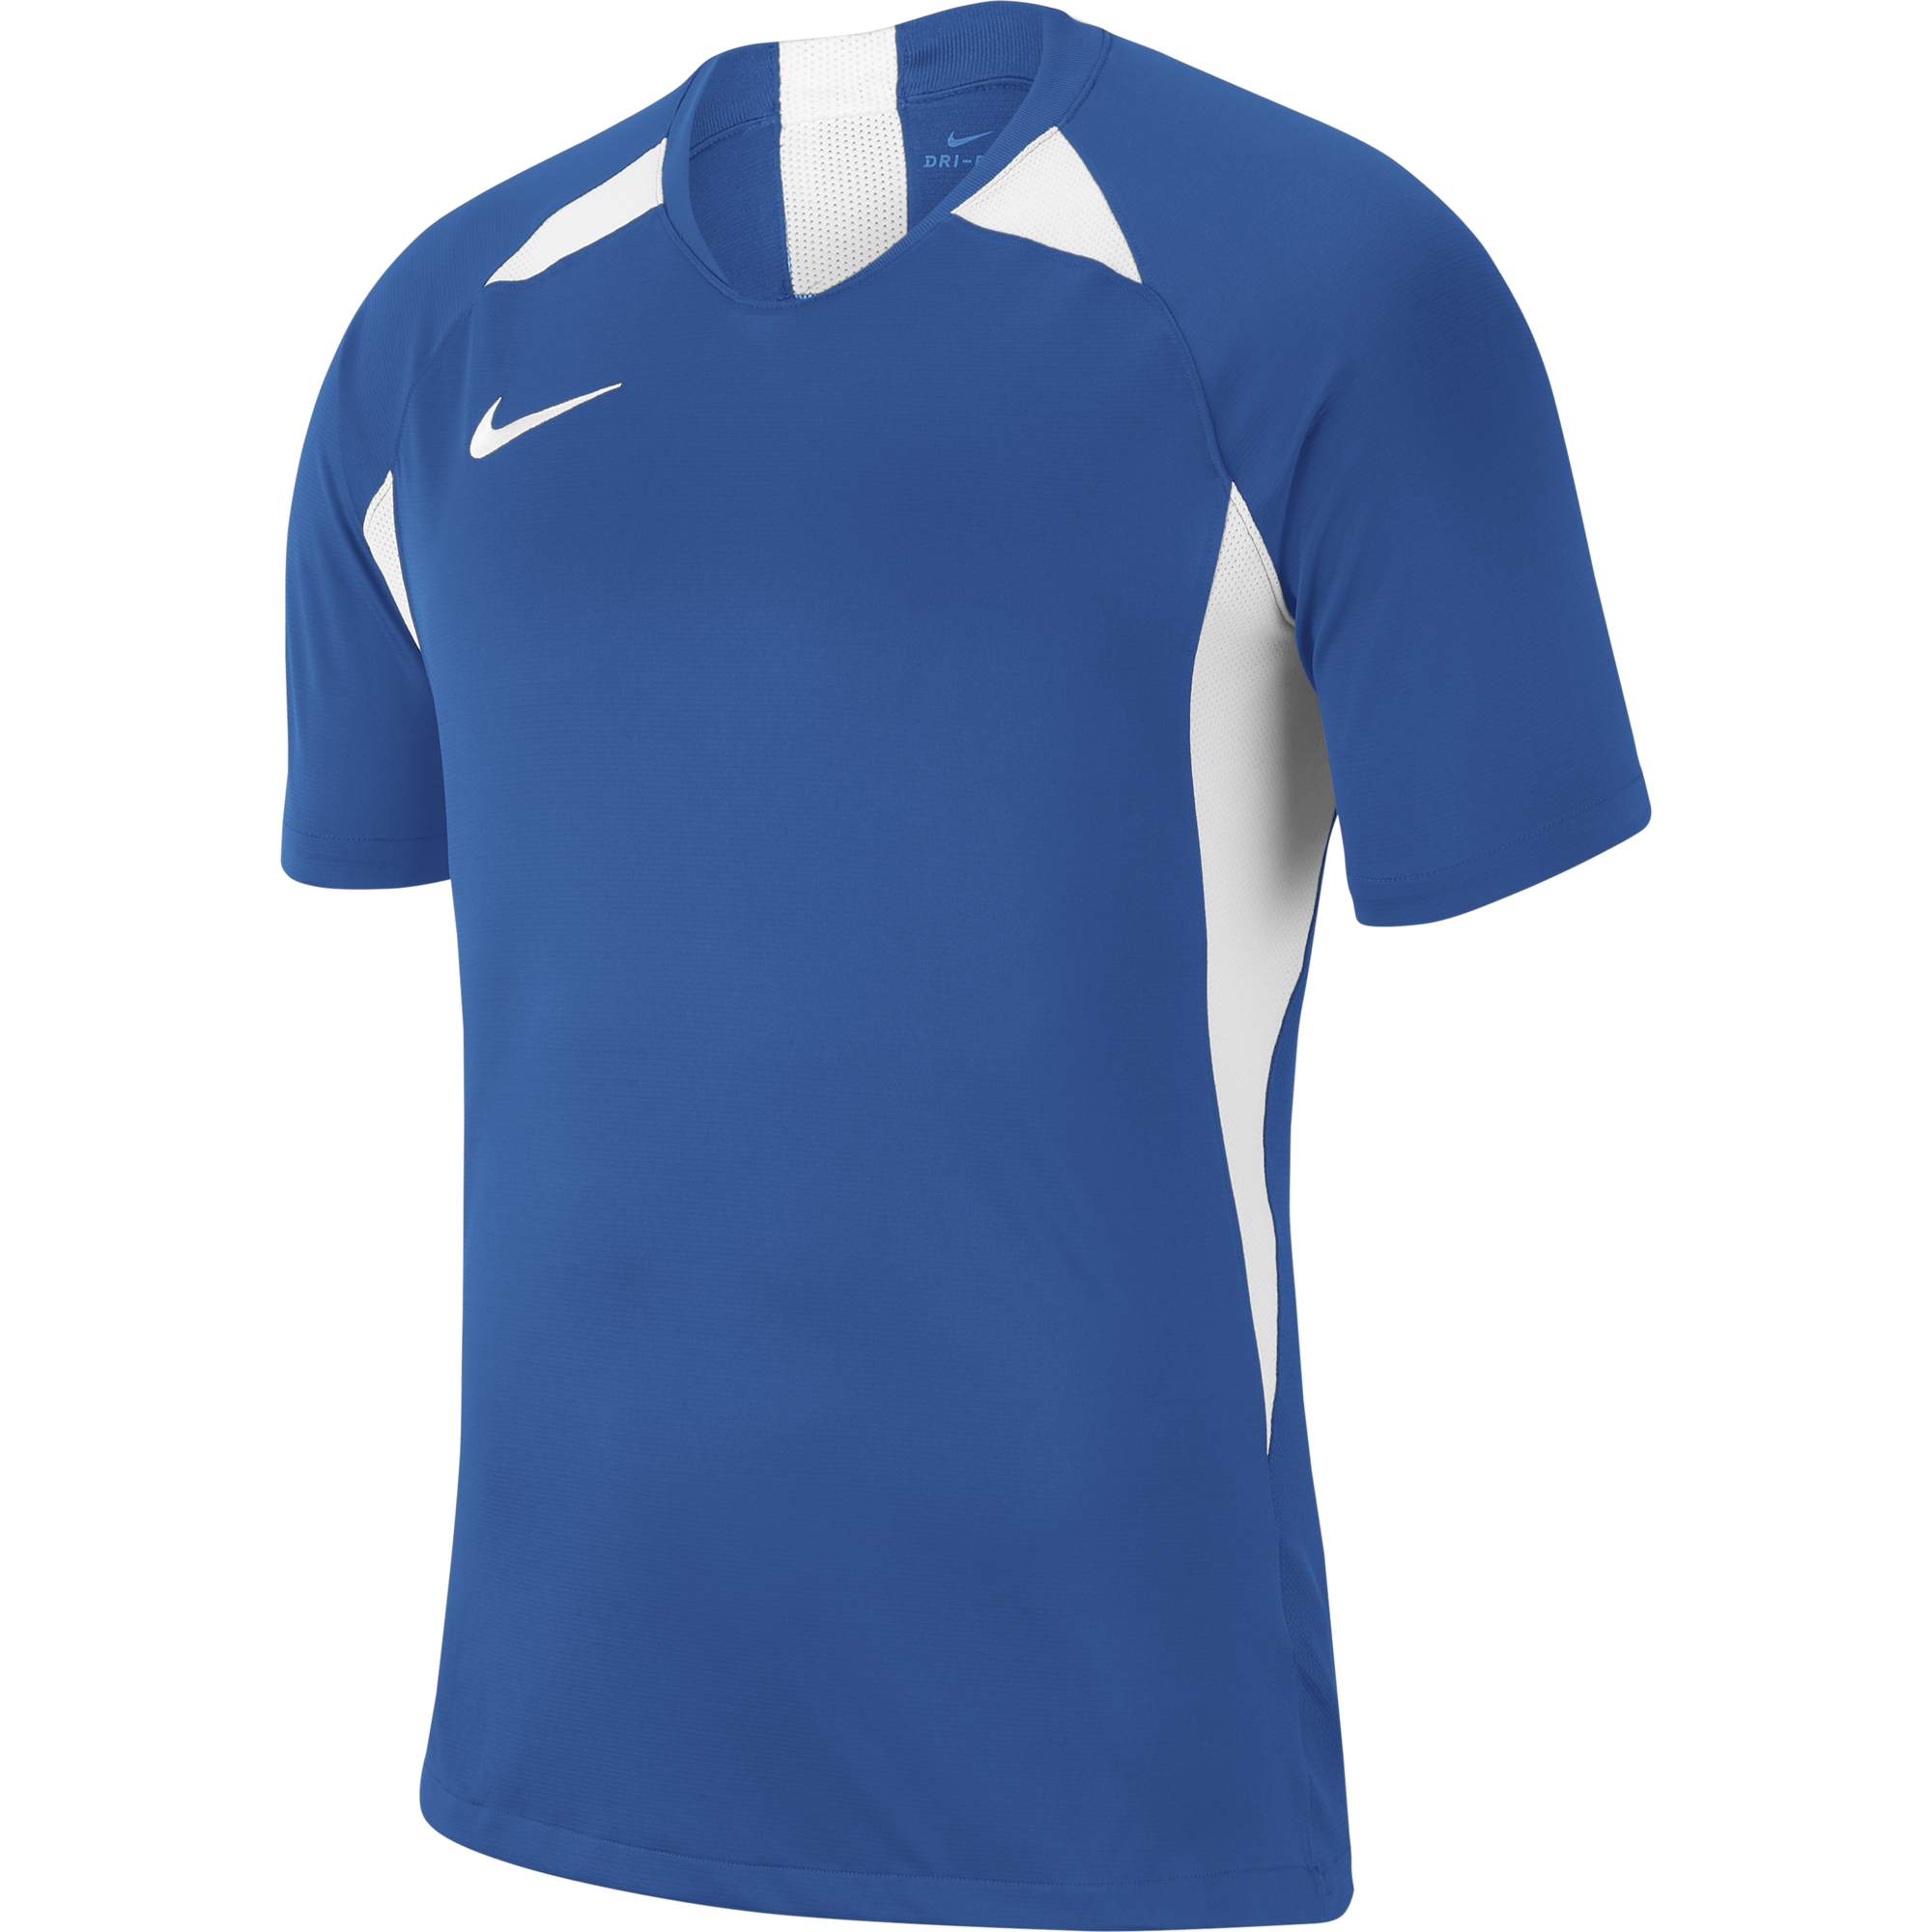 Nike Legend jersey (royal blue/white)